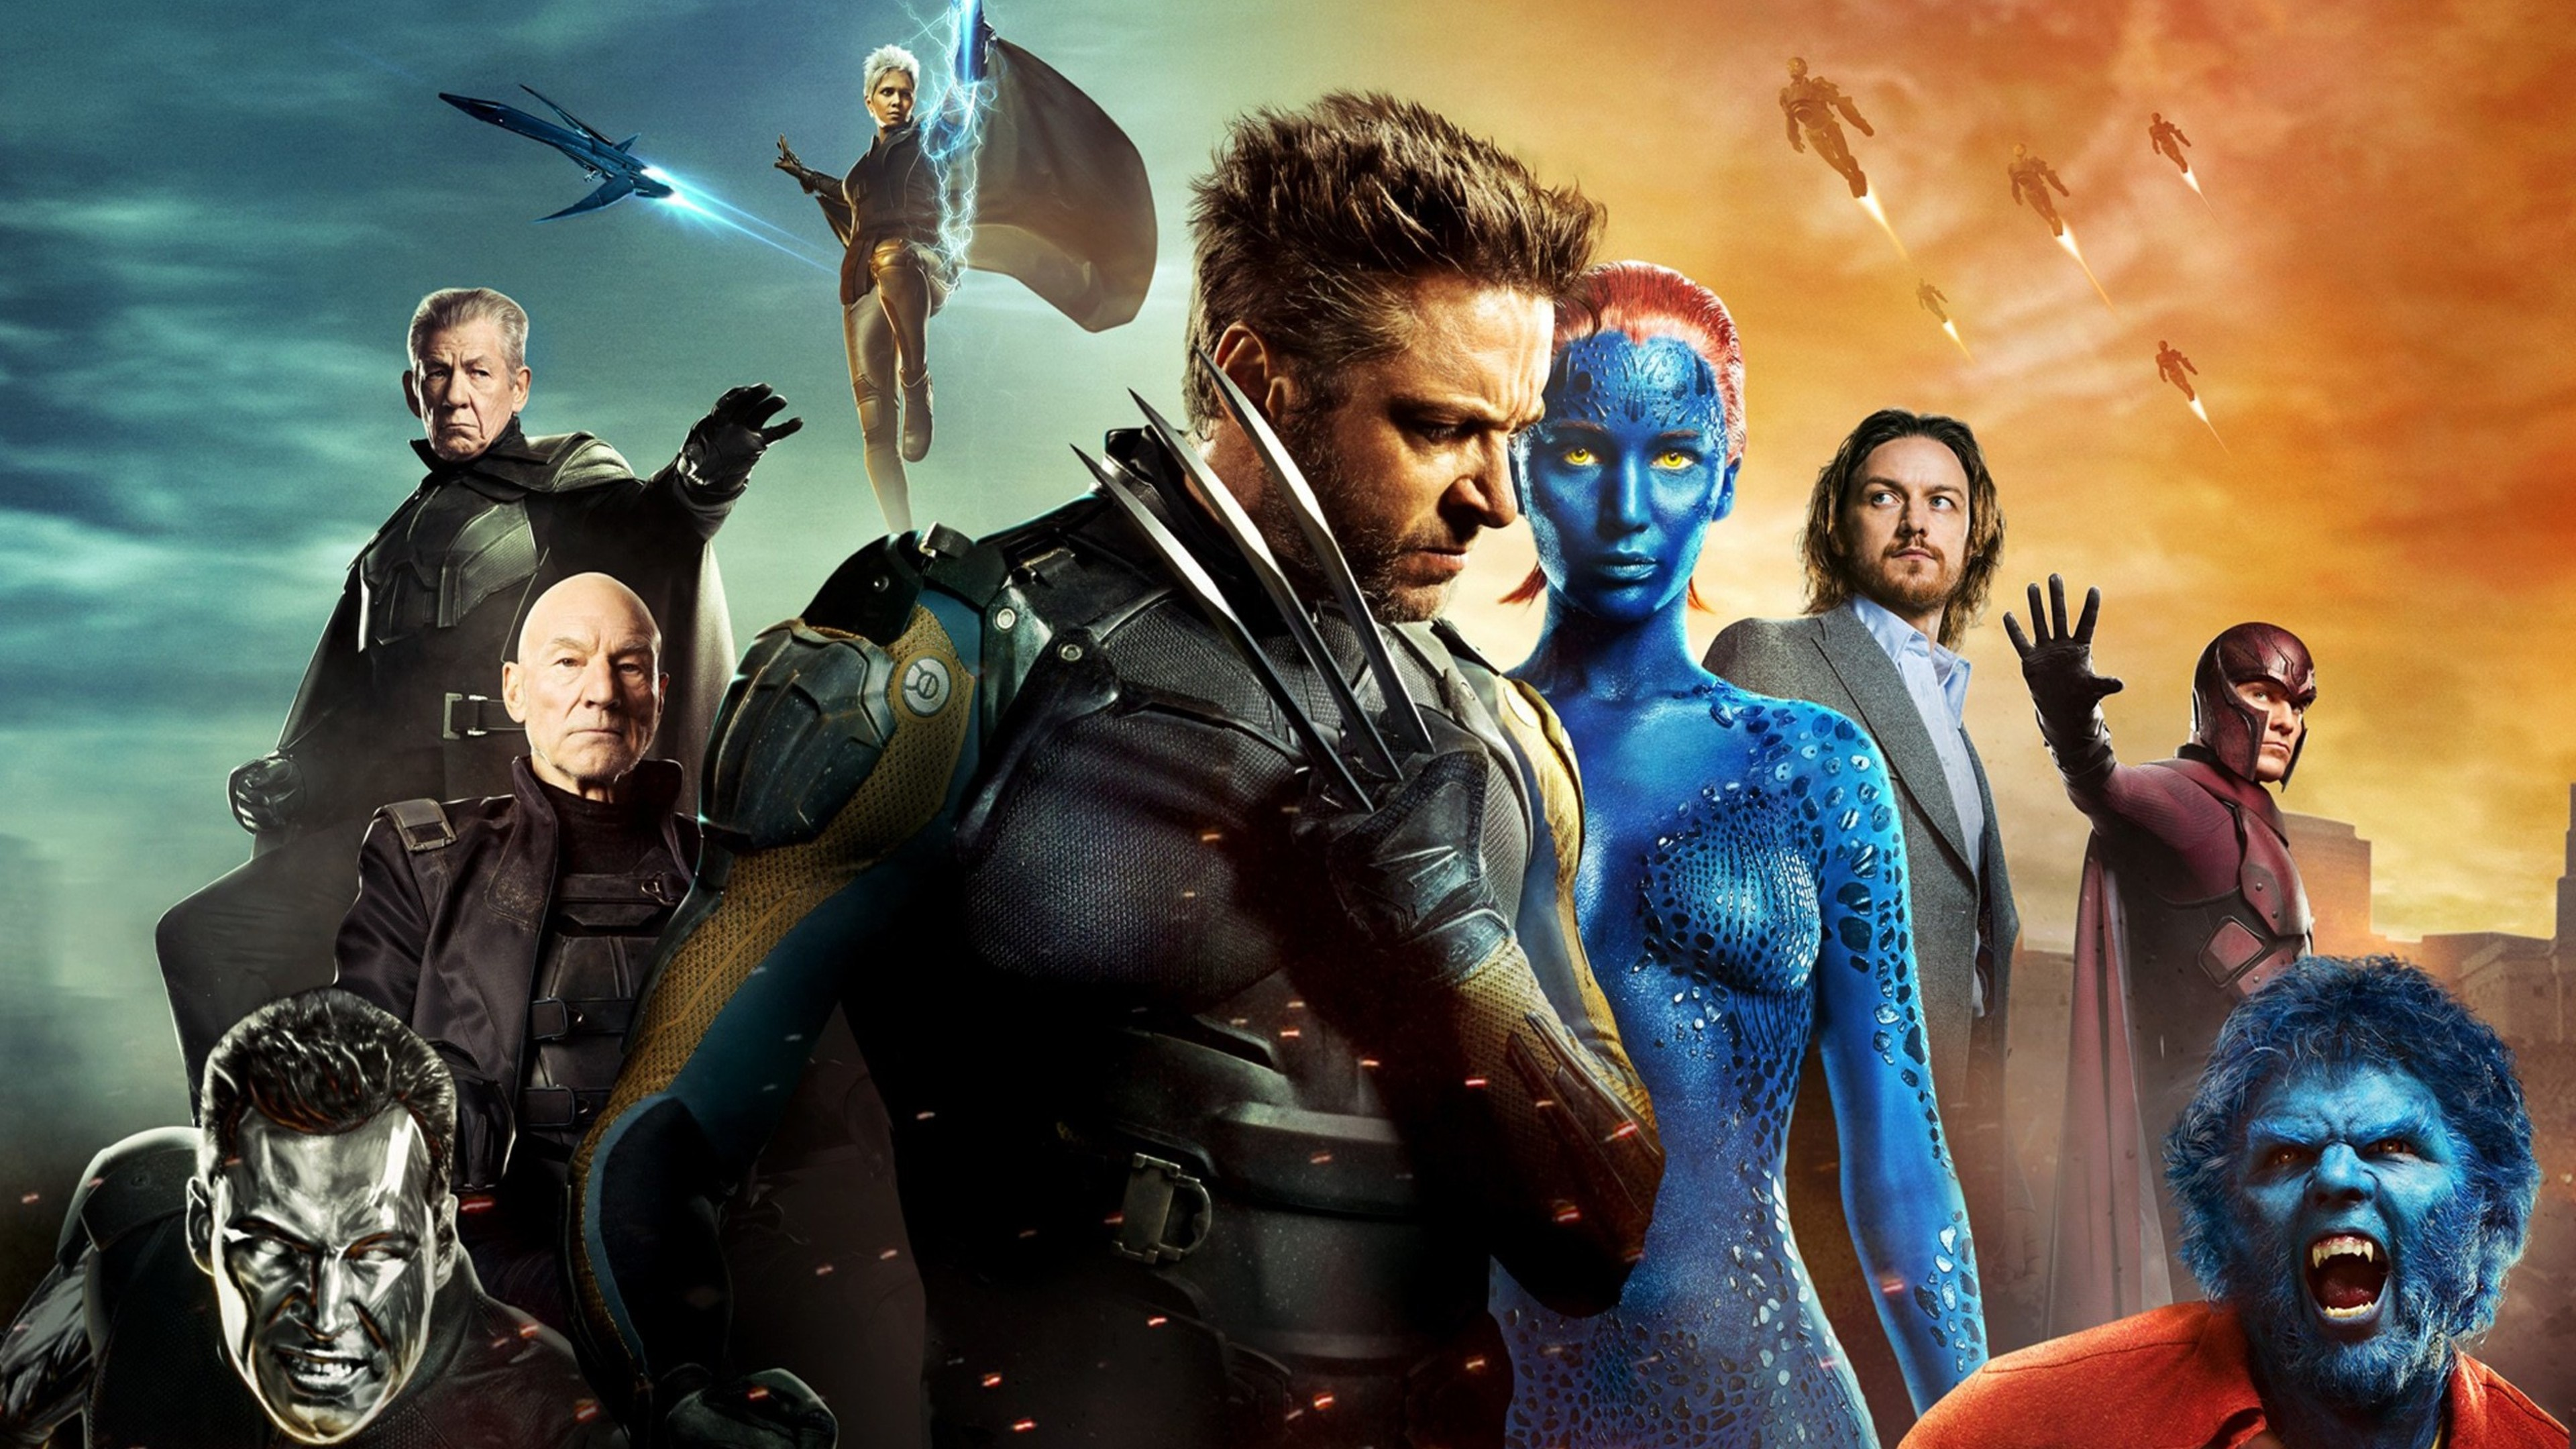 Wallpaper 4k X Men Days Of Future Past Poster movies wallpapers x 3840x2160